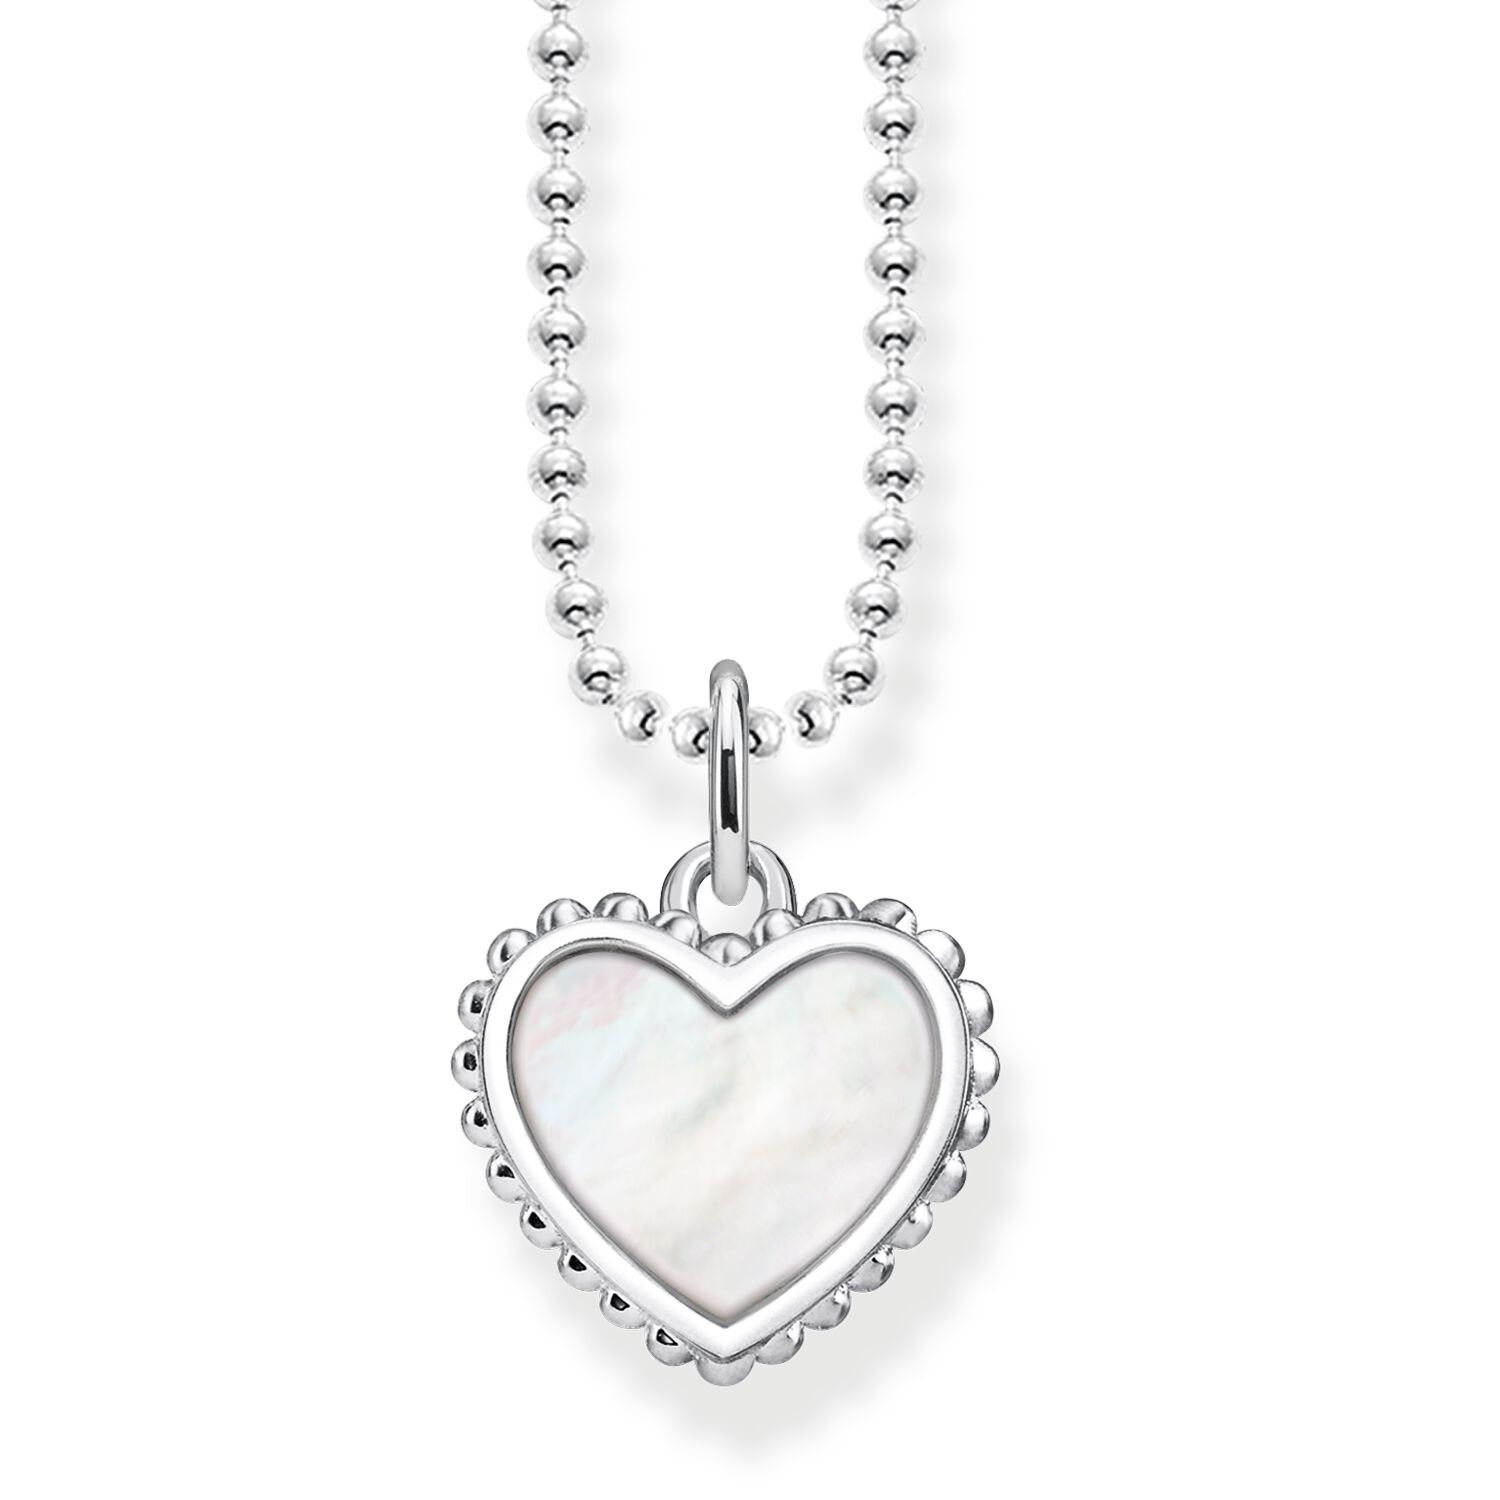 silver with jewelry free crystal personalized on overstock gift necklace heart product orders watches special bezel over shipping